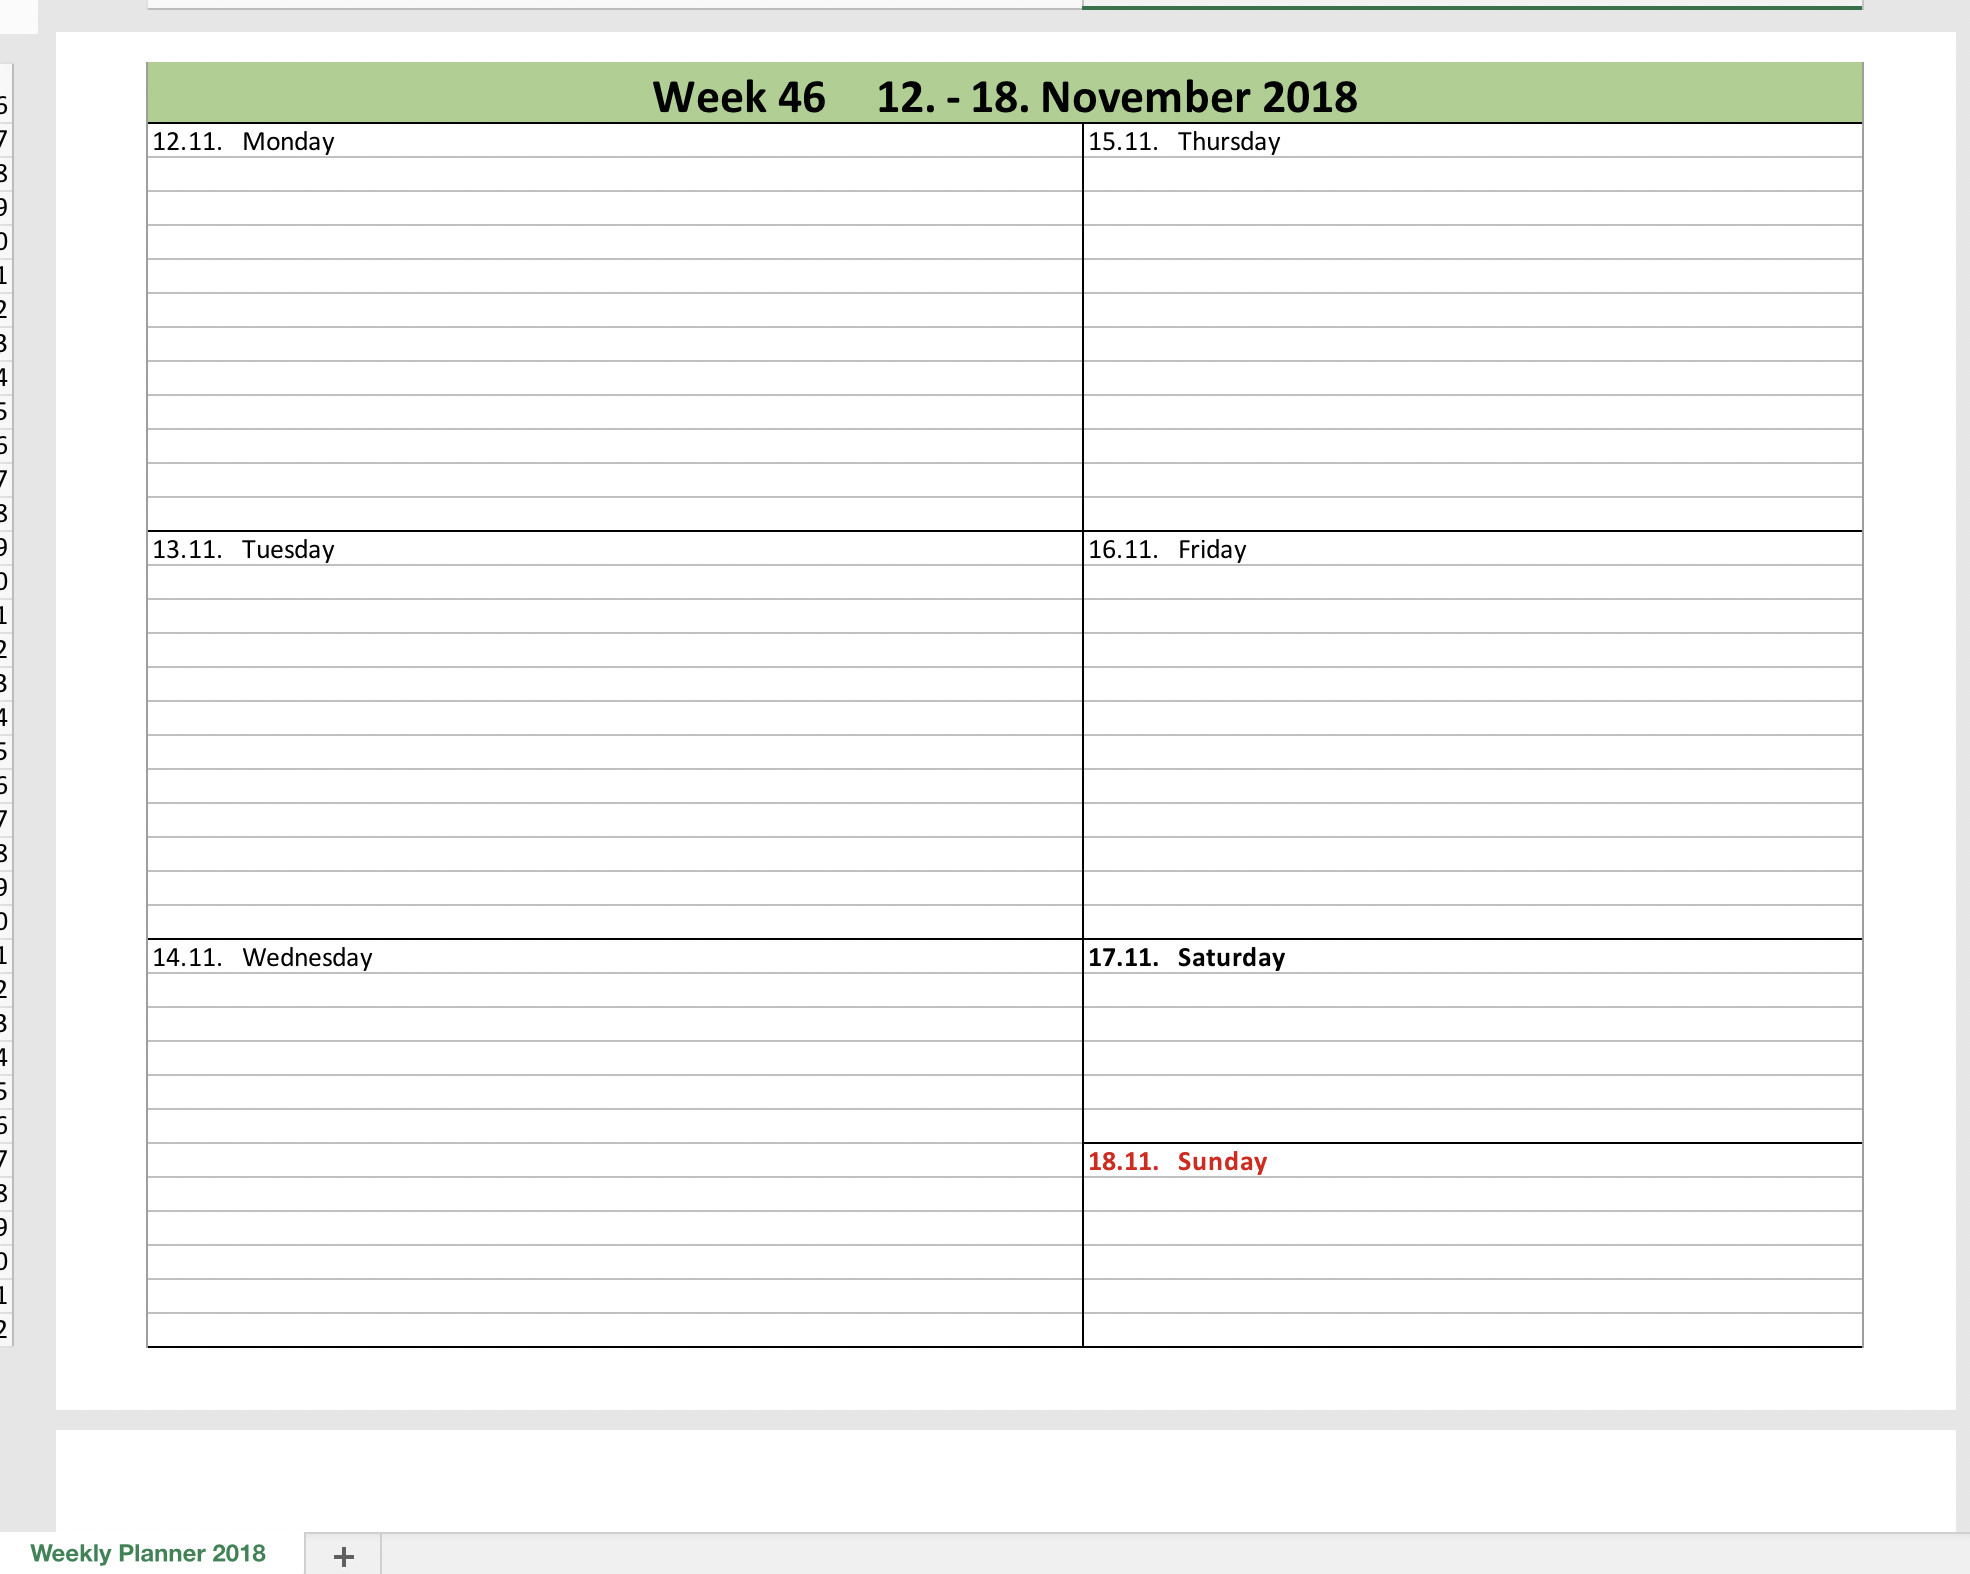 Daily Planner Template Excel Weekly Calendar 2018 with Excel